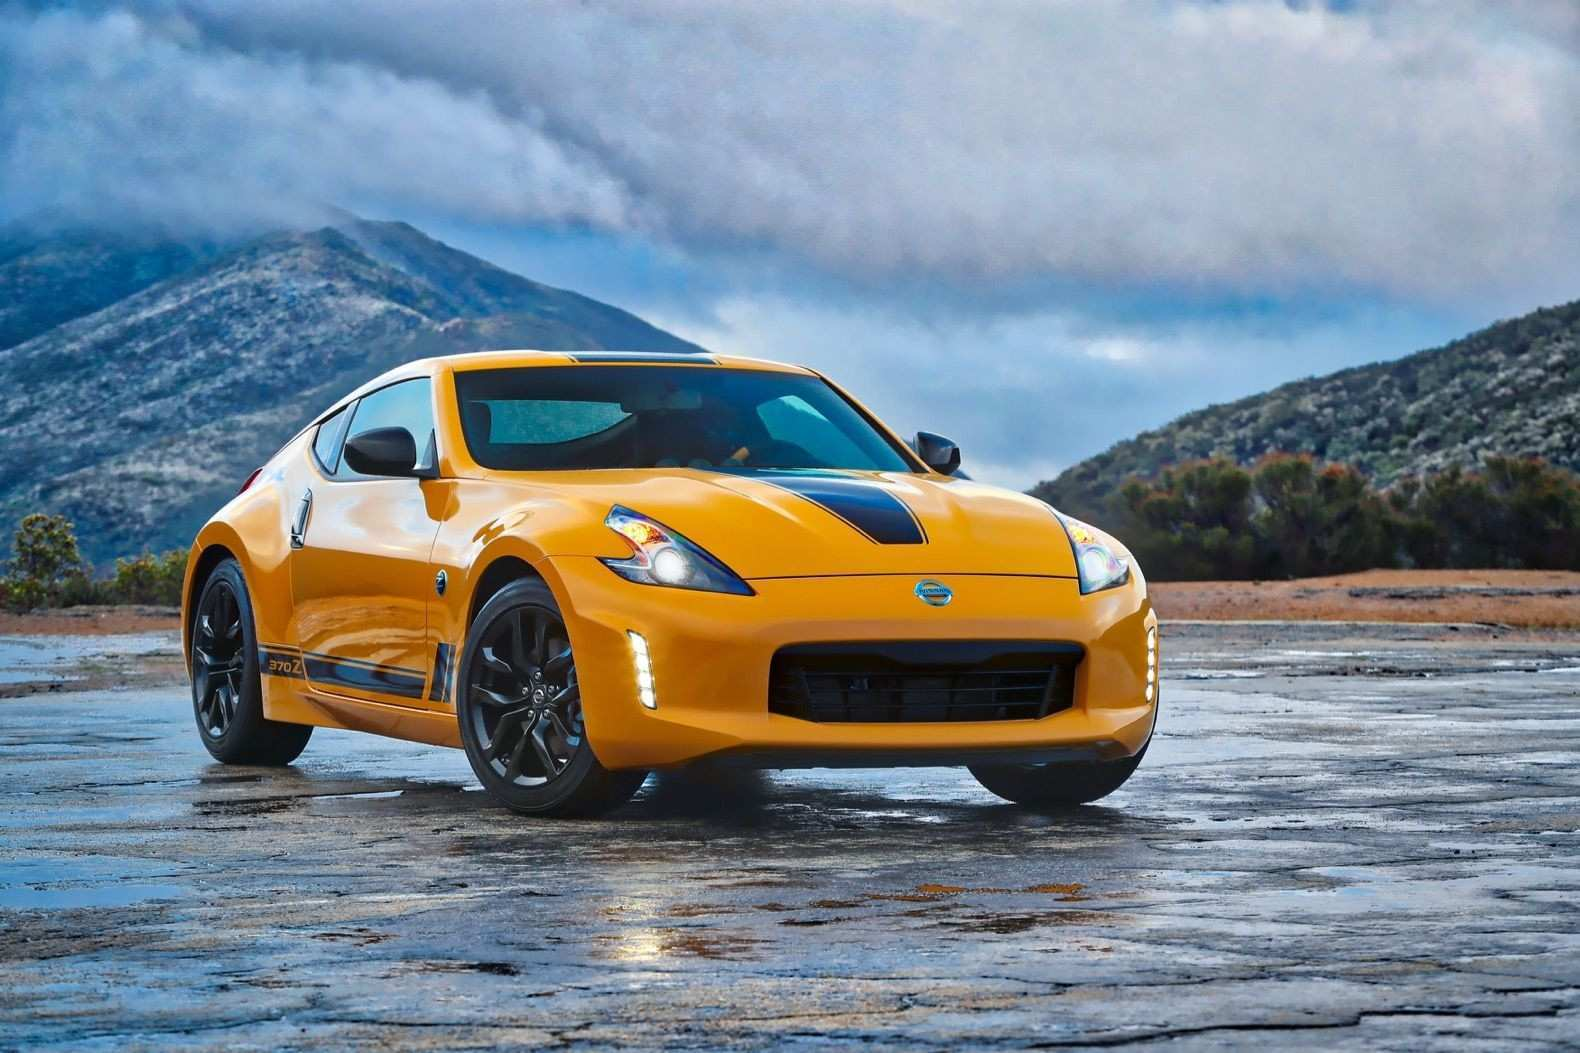 93 Best Review 2020 The Nissan Z35 Review Rumors with 2020 The Nissan Z35 Review